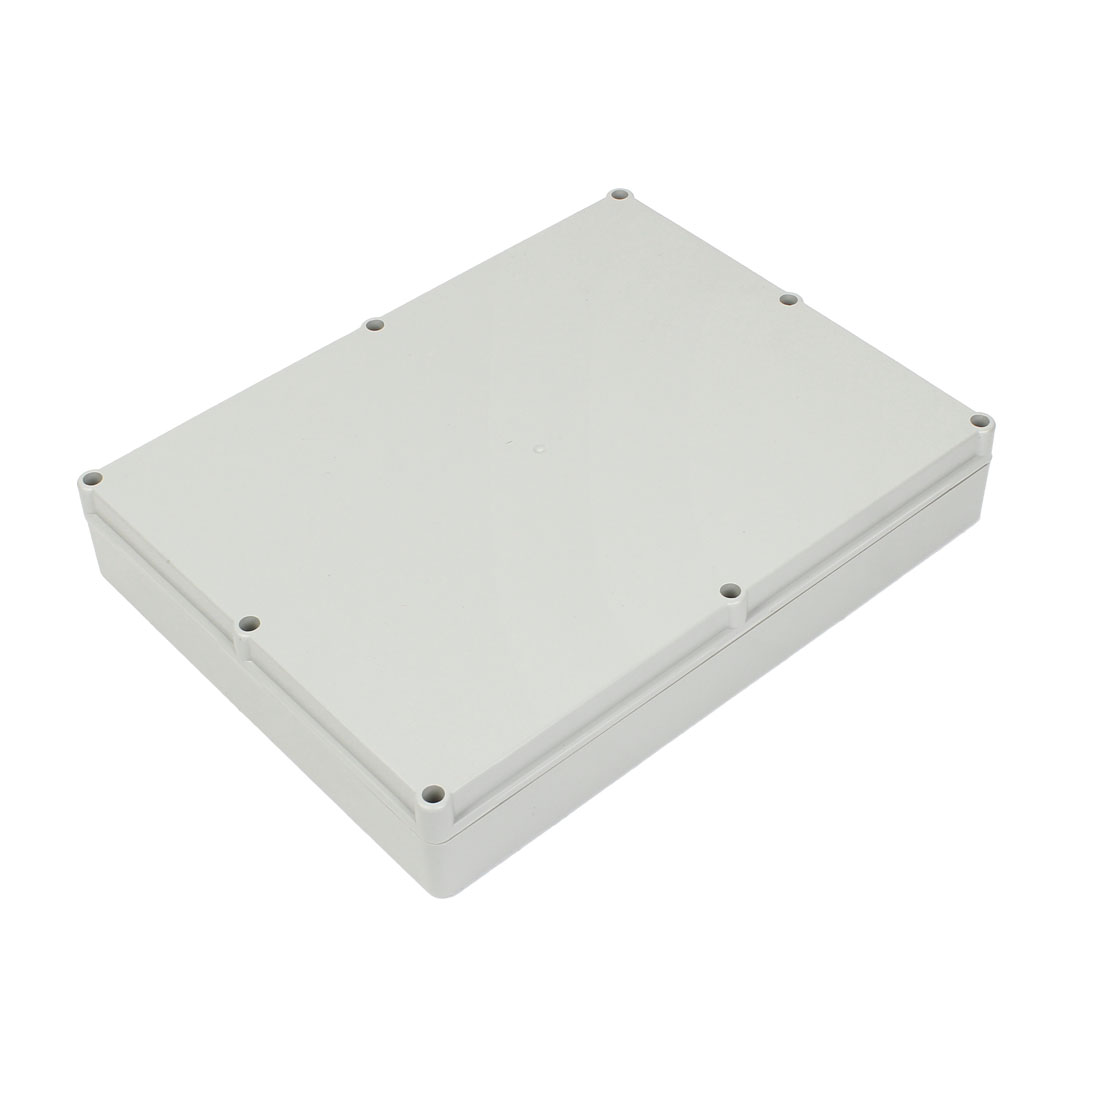 Rectangular Plastic DIY Junction Box Case 295mmx225mmx55mm